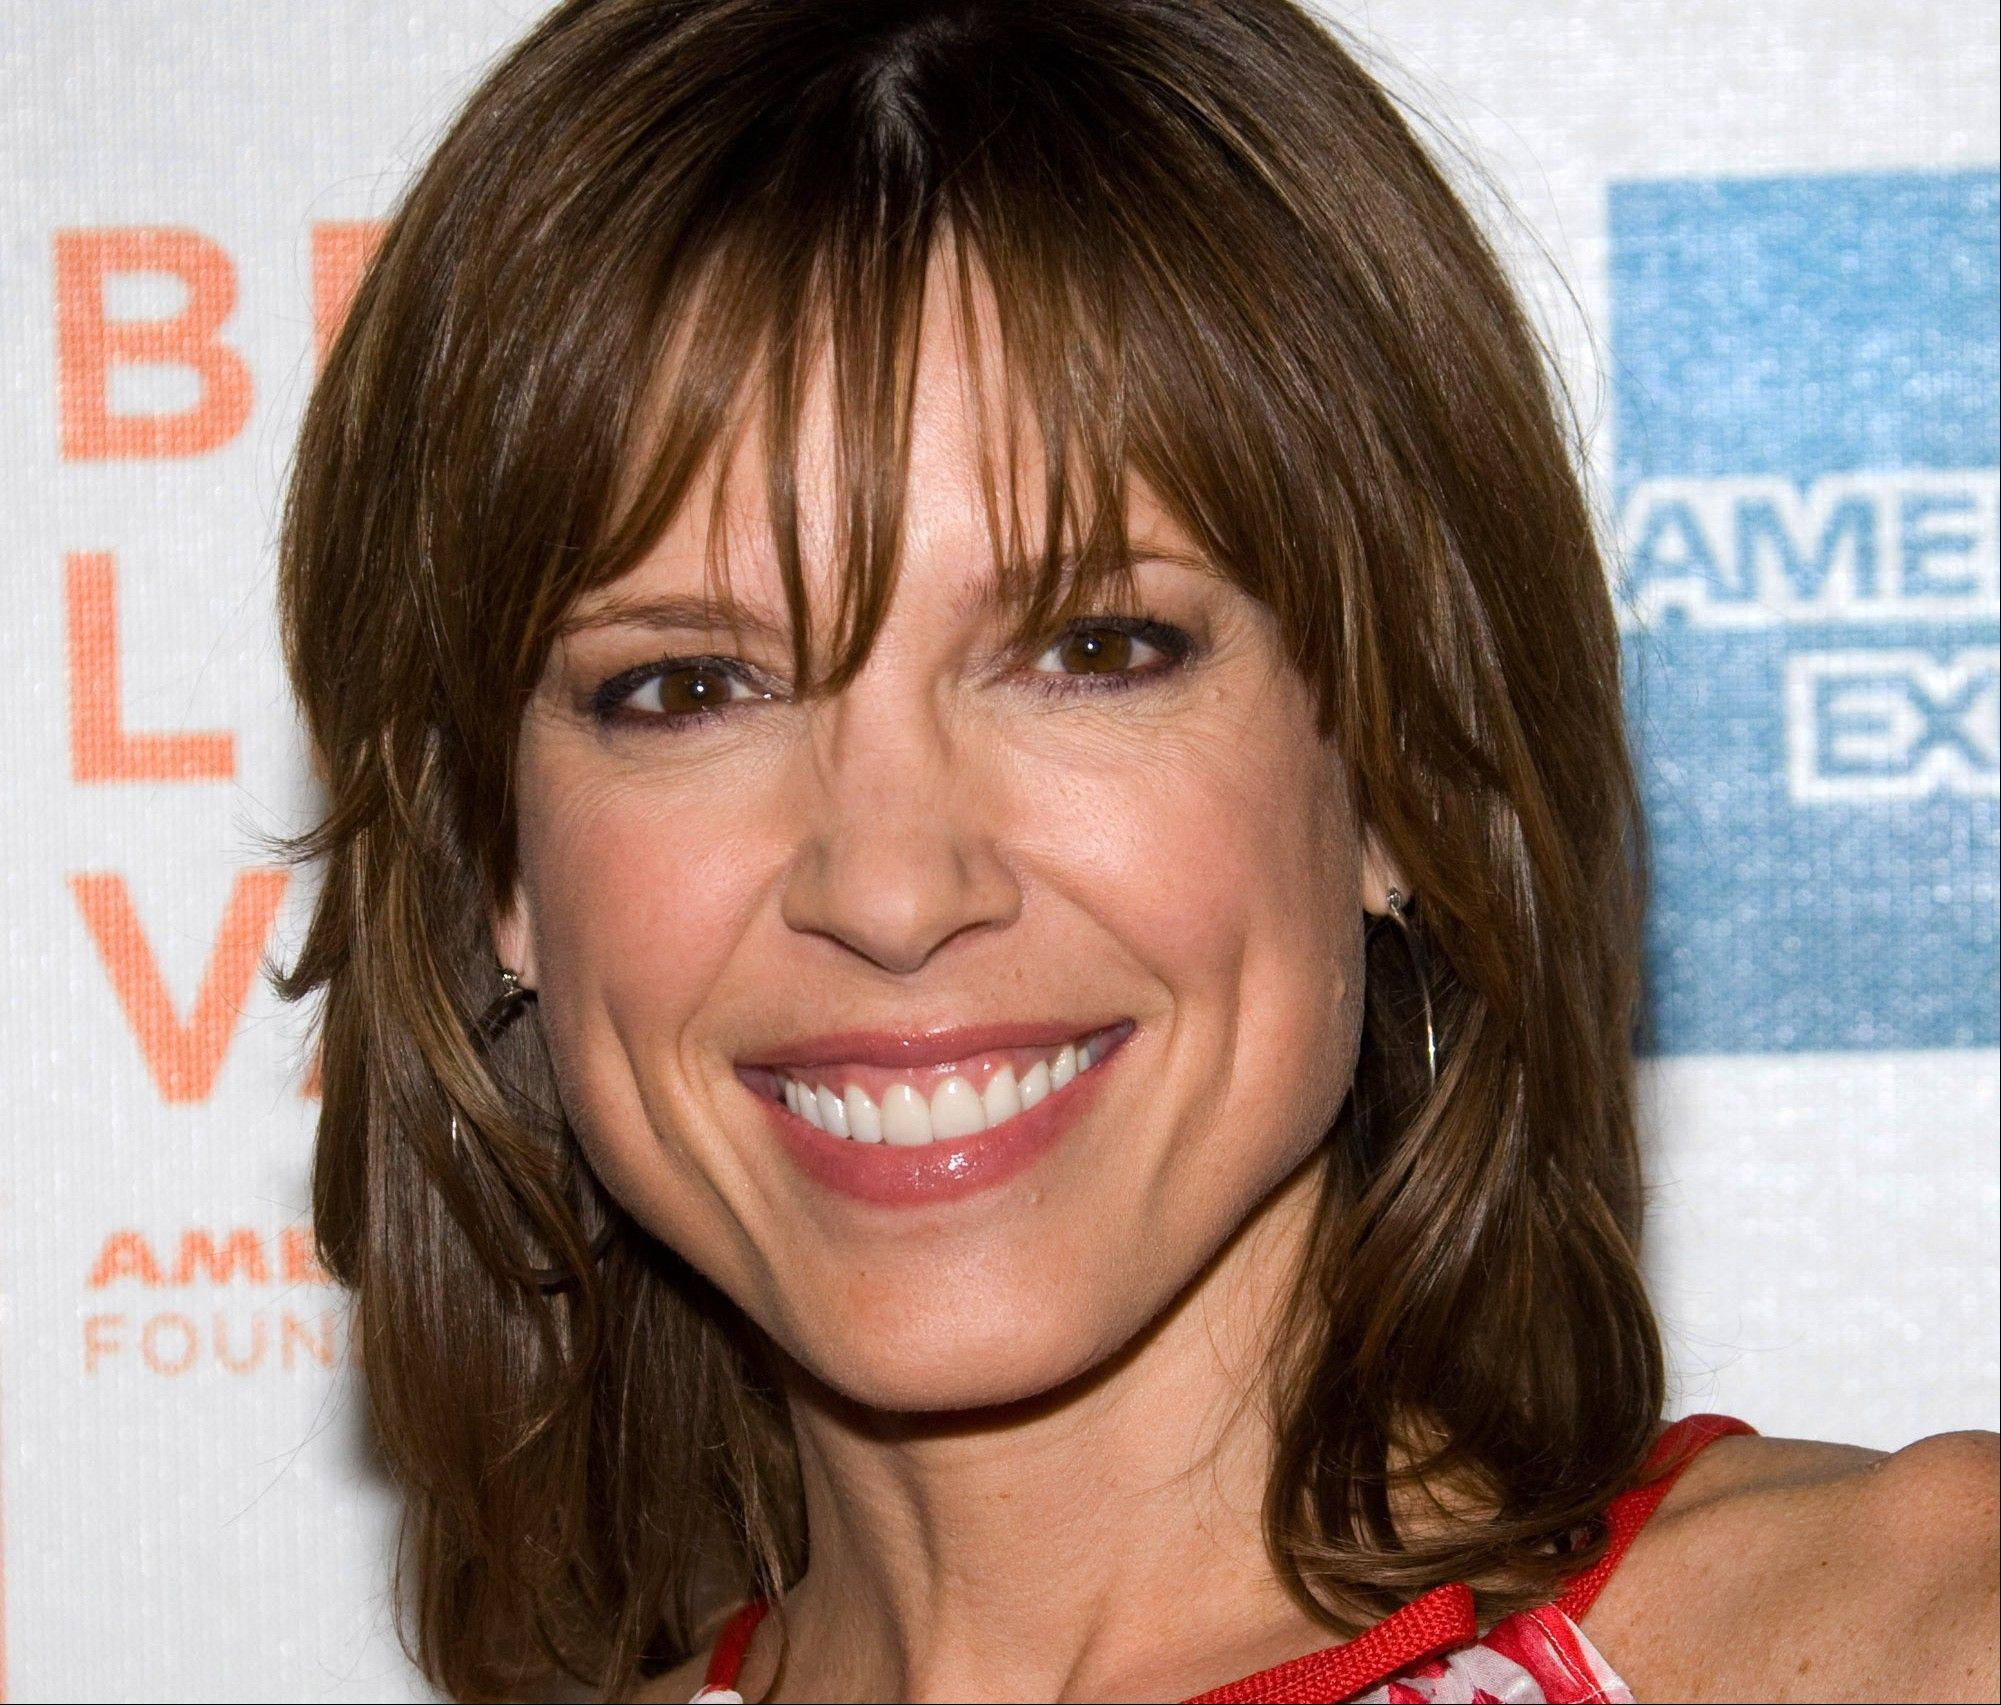 ESPN anchor Hannah Storm will return to the air on New Year's Day, exactly three weeks after she was seriously burned in a propane gas grill accident at her home.